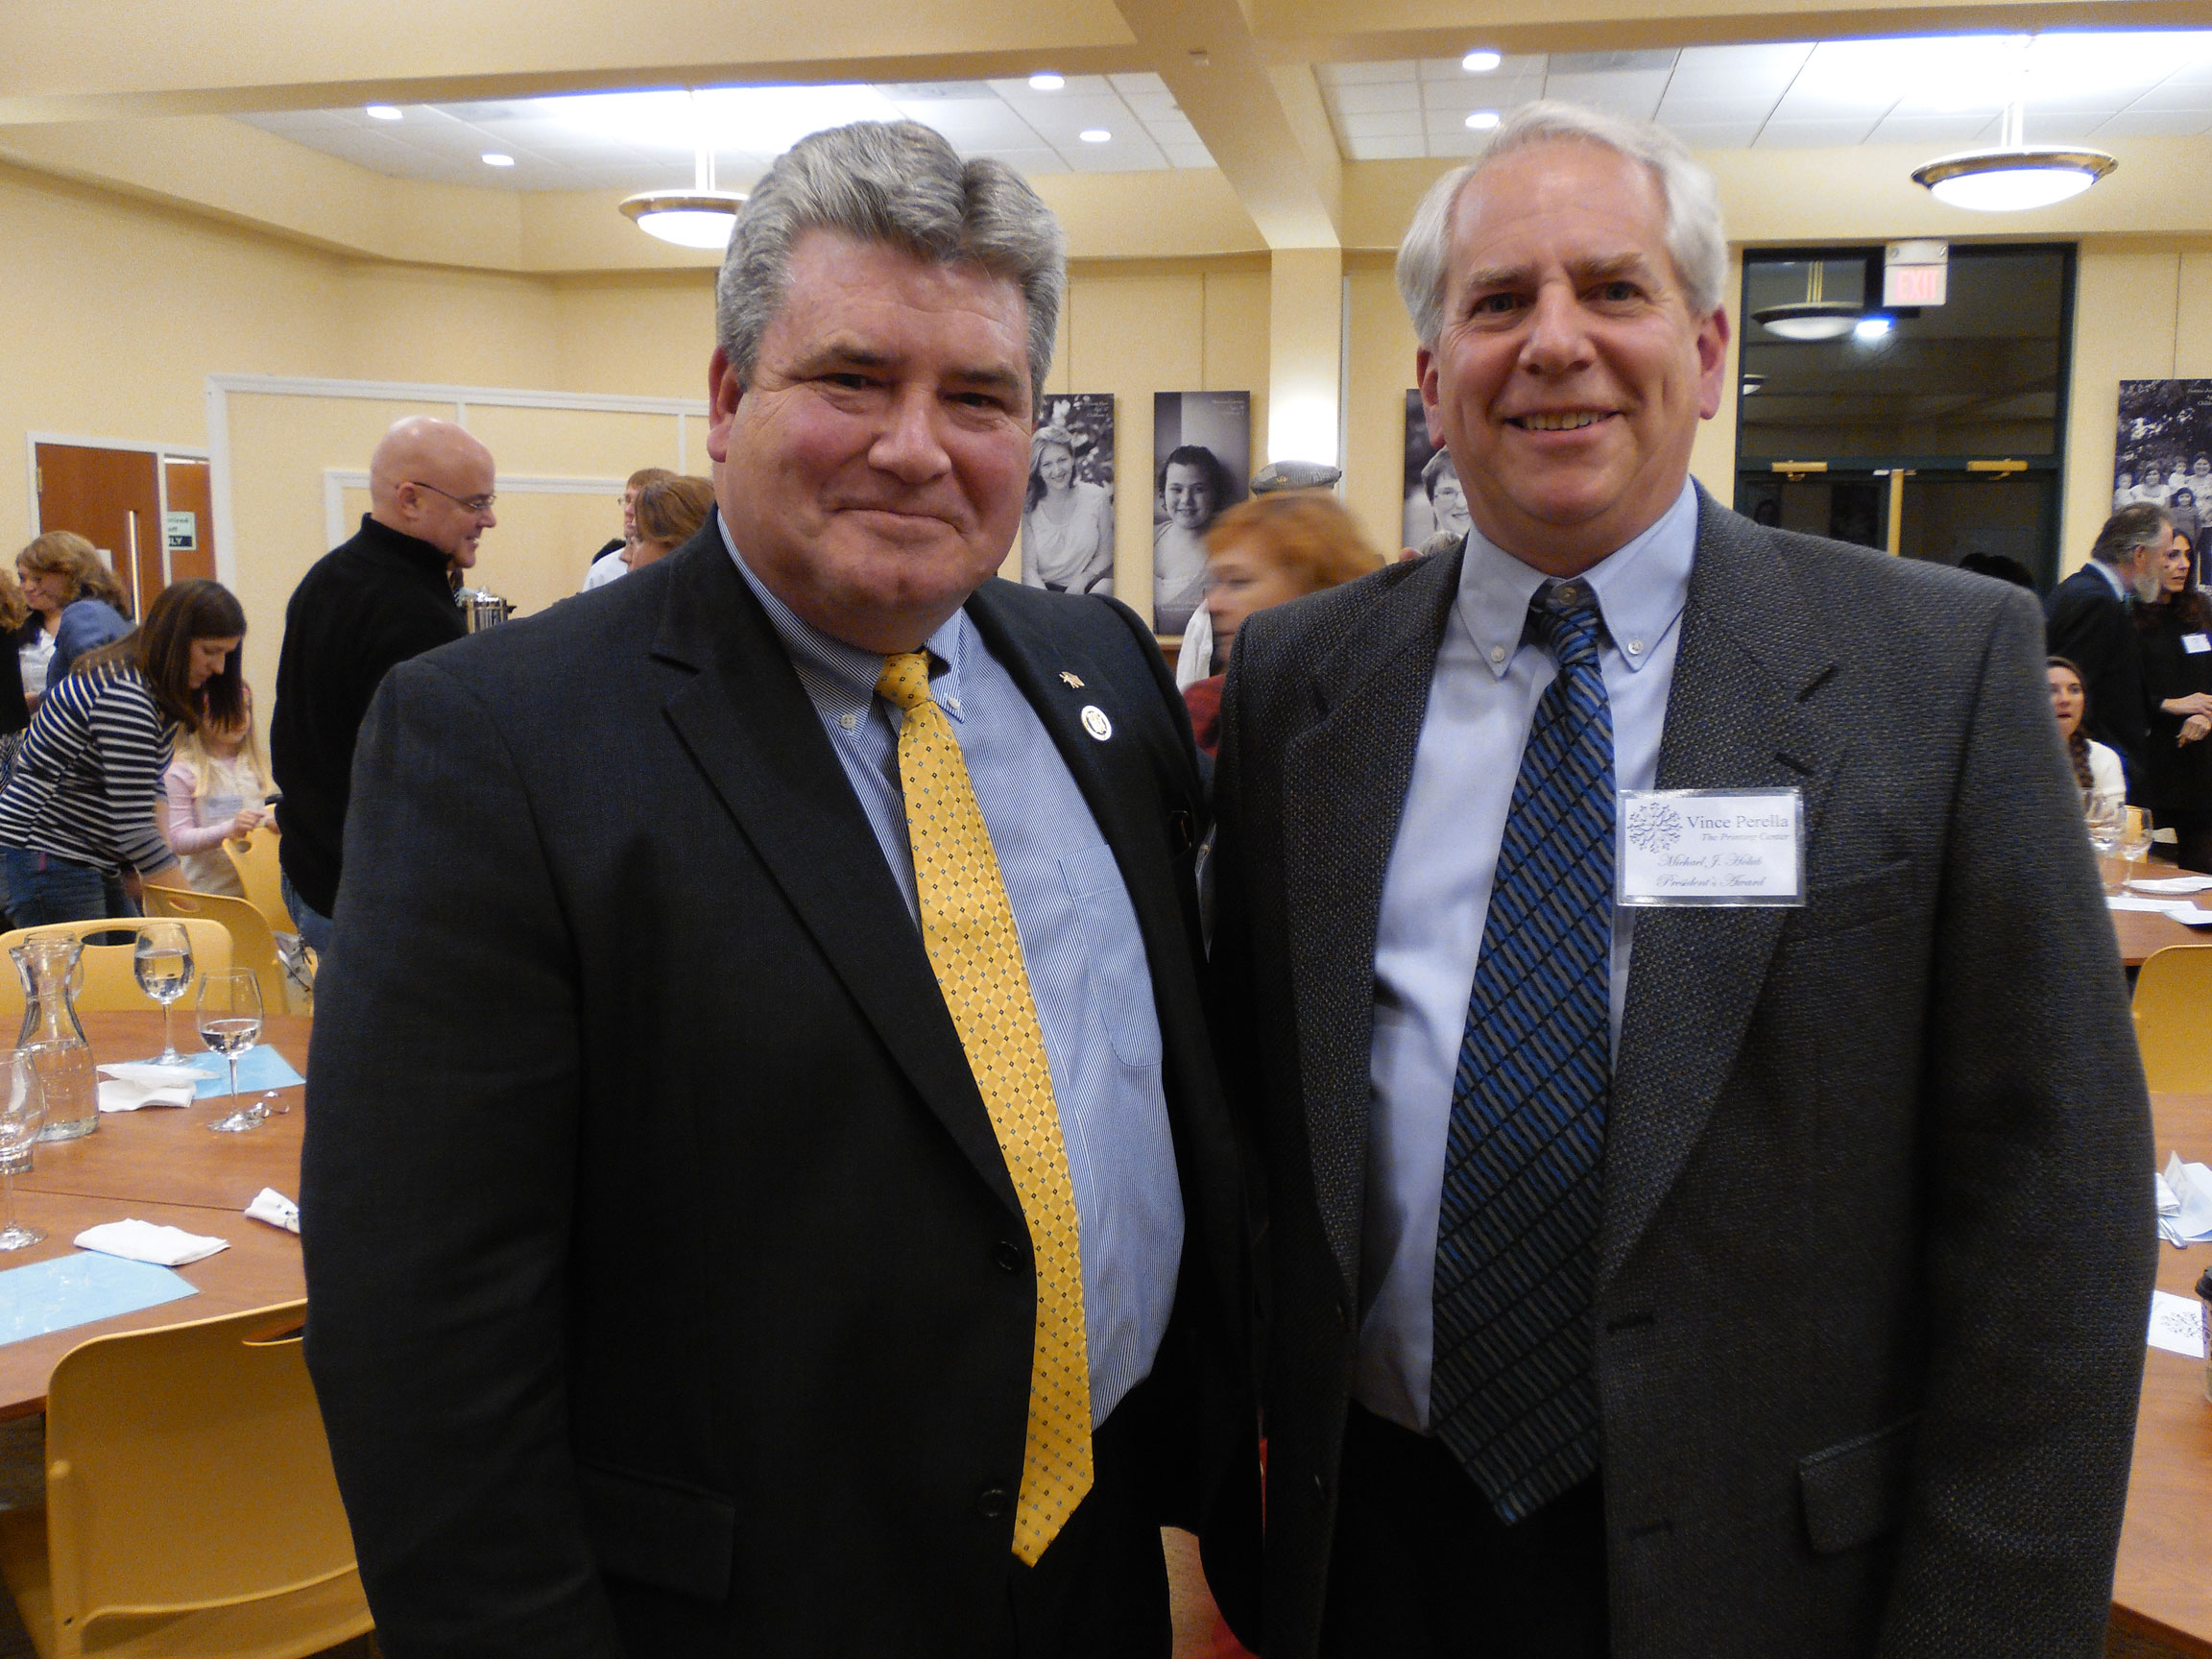 2d270476adf57e928e09Steve Oroho and Vince Perellajpg Sparta Businessman Community Volunteers Honored at